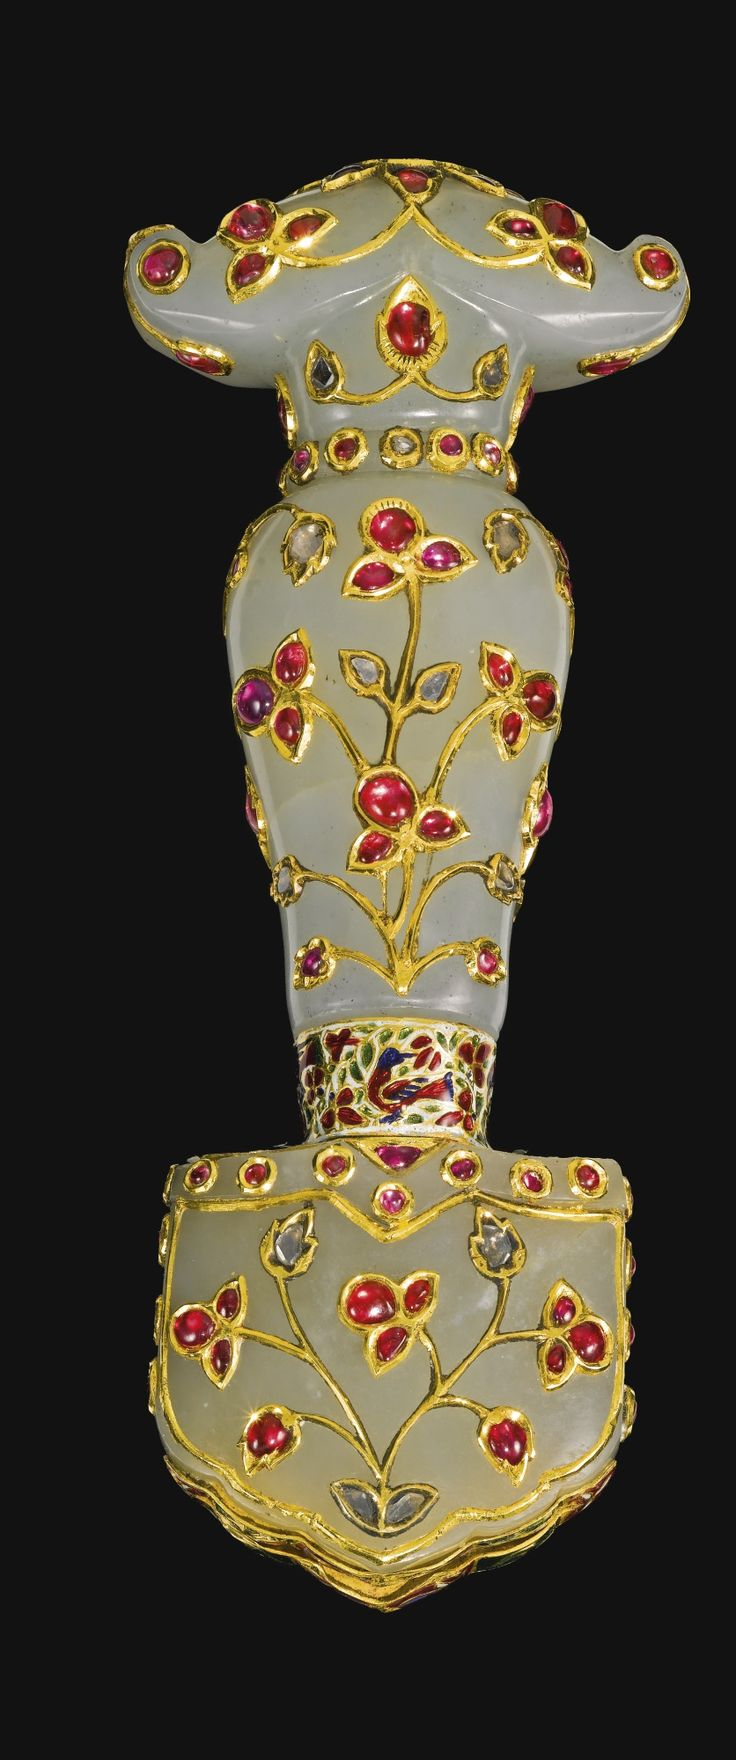 A Mughal gem-set jade hilt with enamelled band, India, 19th century. The carved jade hilt of baluster form, set with foil-backed diamonds, rubies and coloured gemstones designed as floral stems, connected to the lobed jade chape decorated en-suite by a polychrome enamelled band with birds amidst foliage.